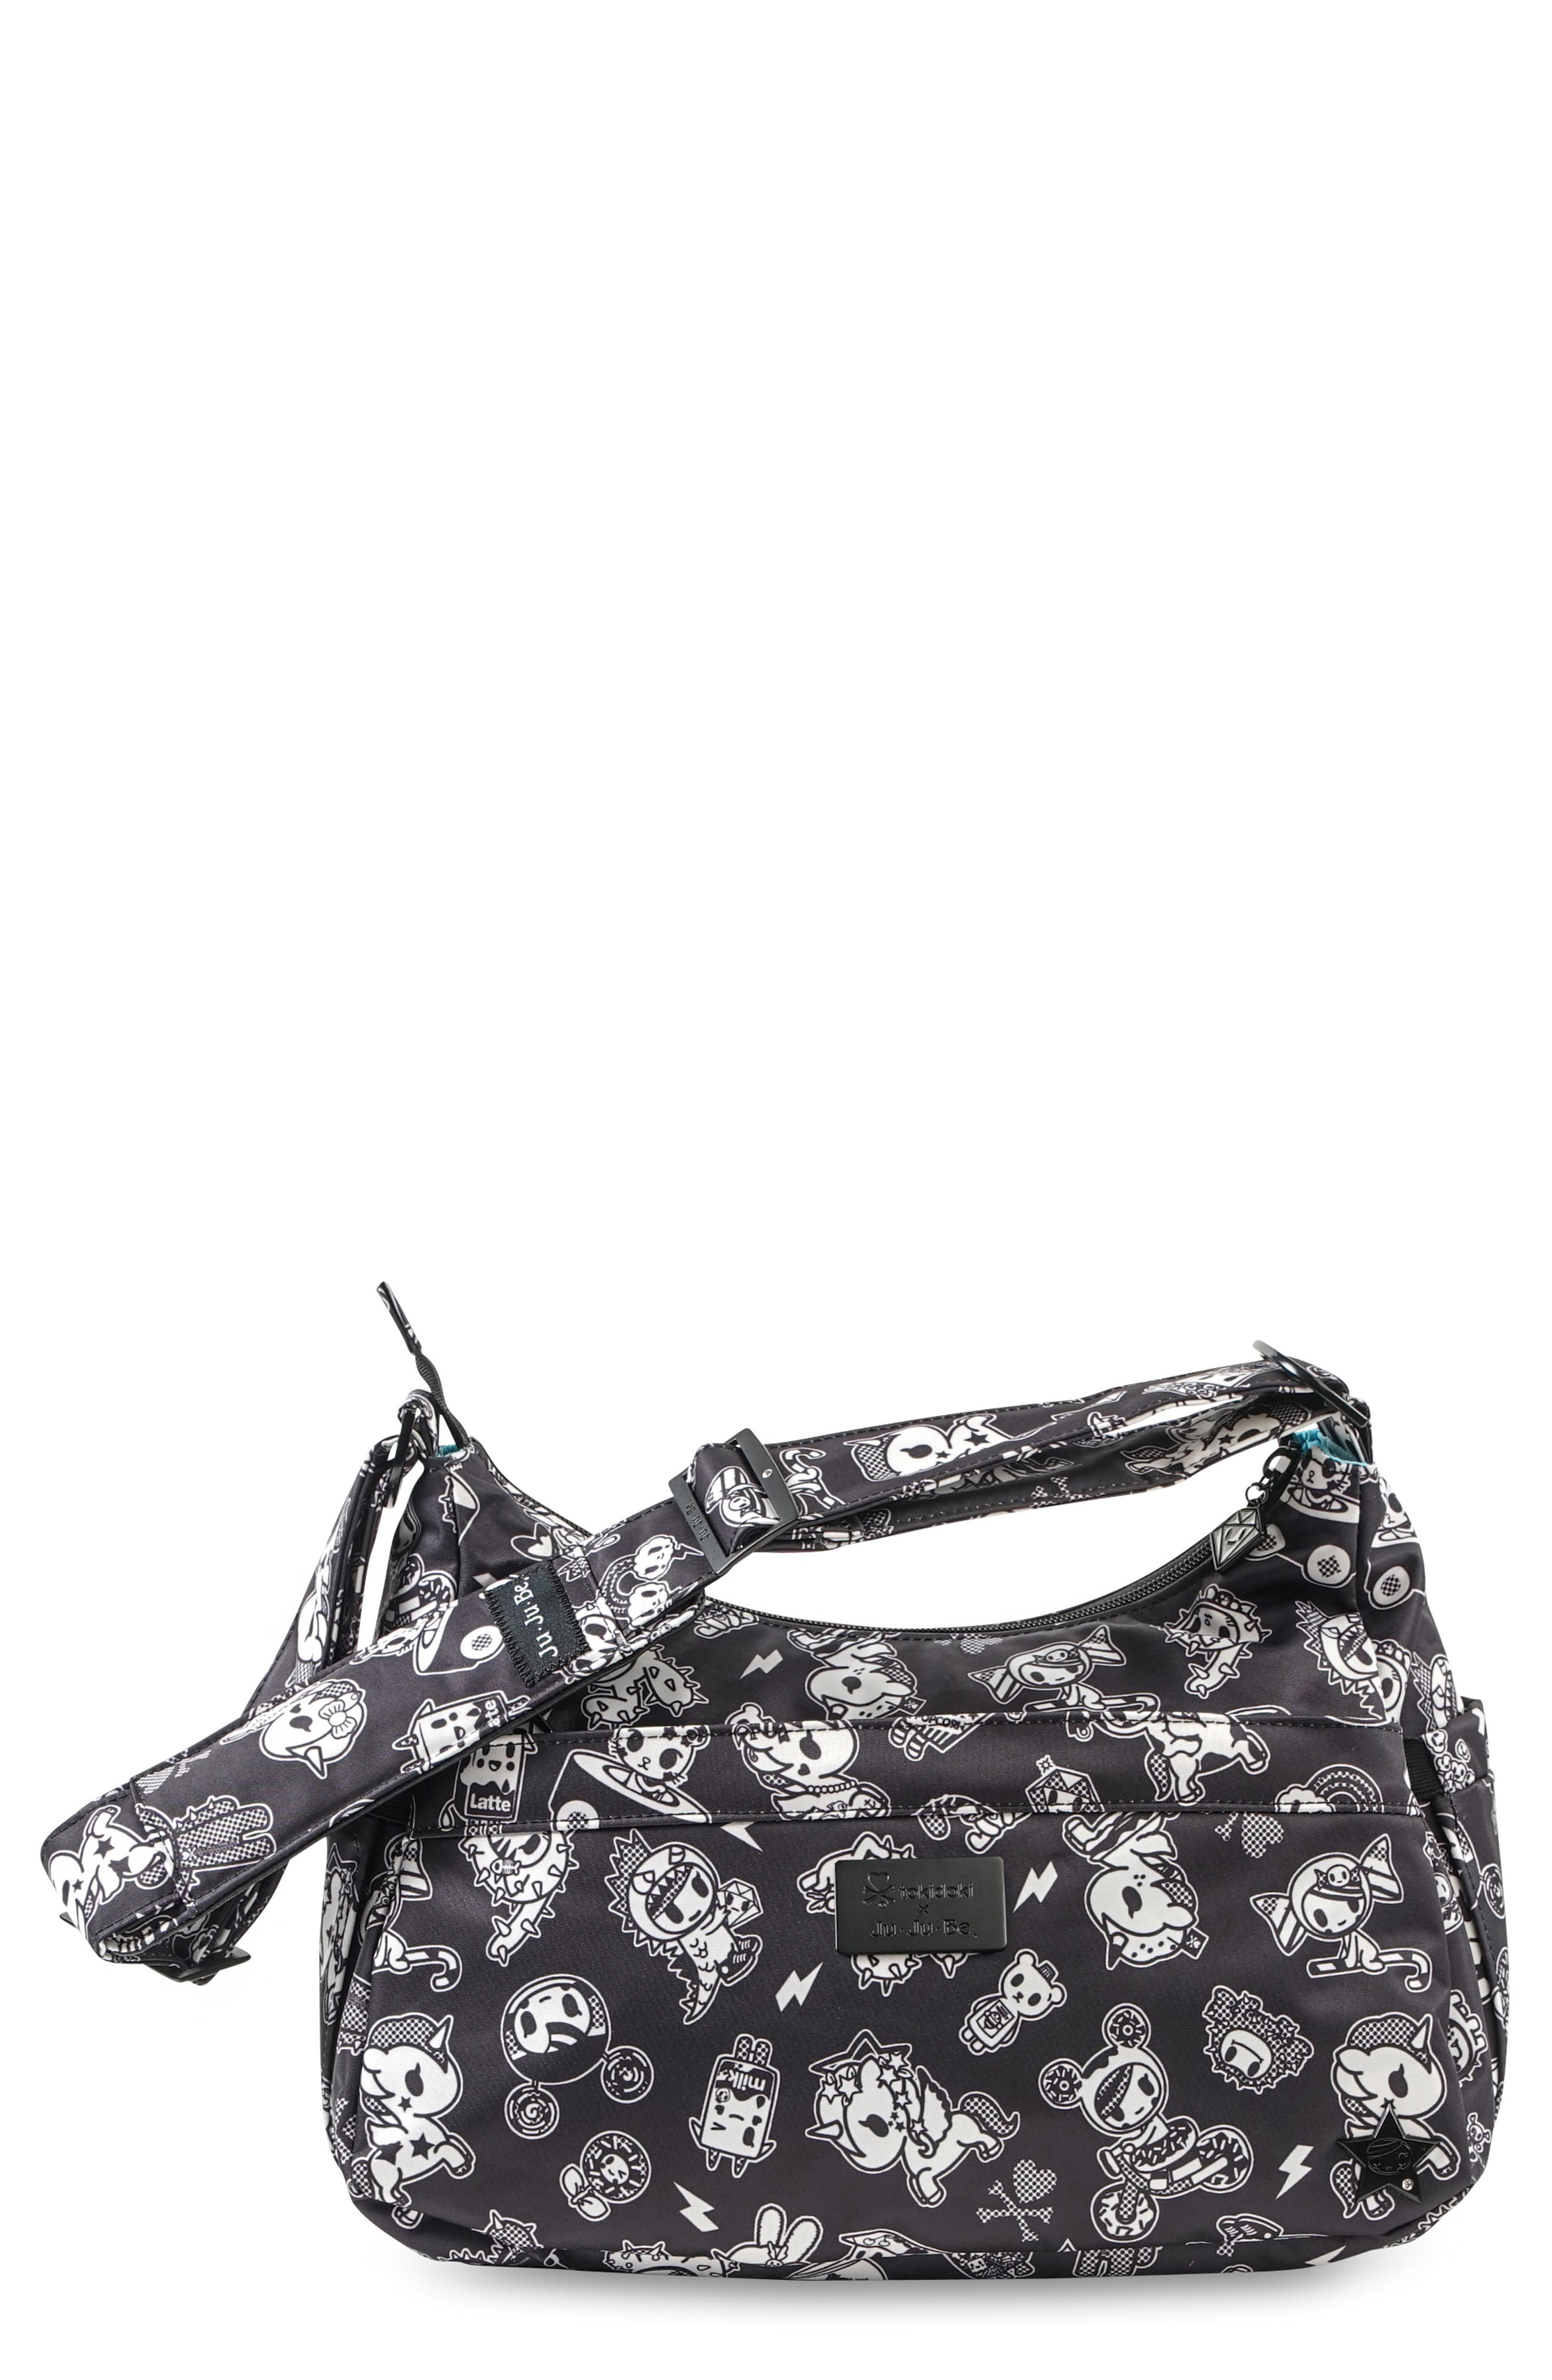 tokidoki x Ju-Ju-Be 'HoboBe' Diaper Bag,                             Main thumbnail 1, color,                             009